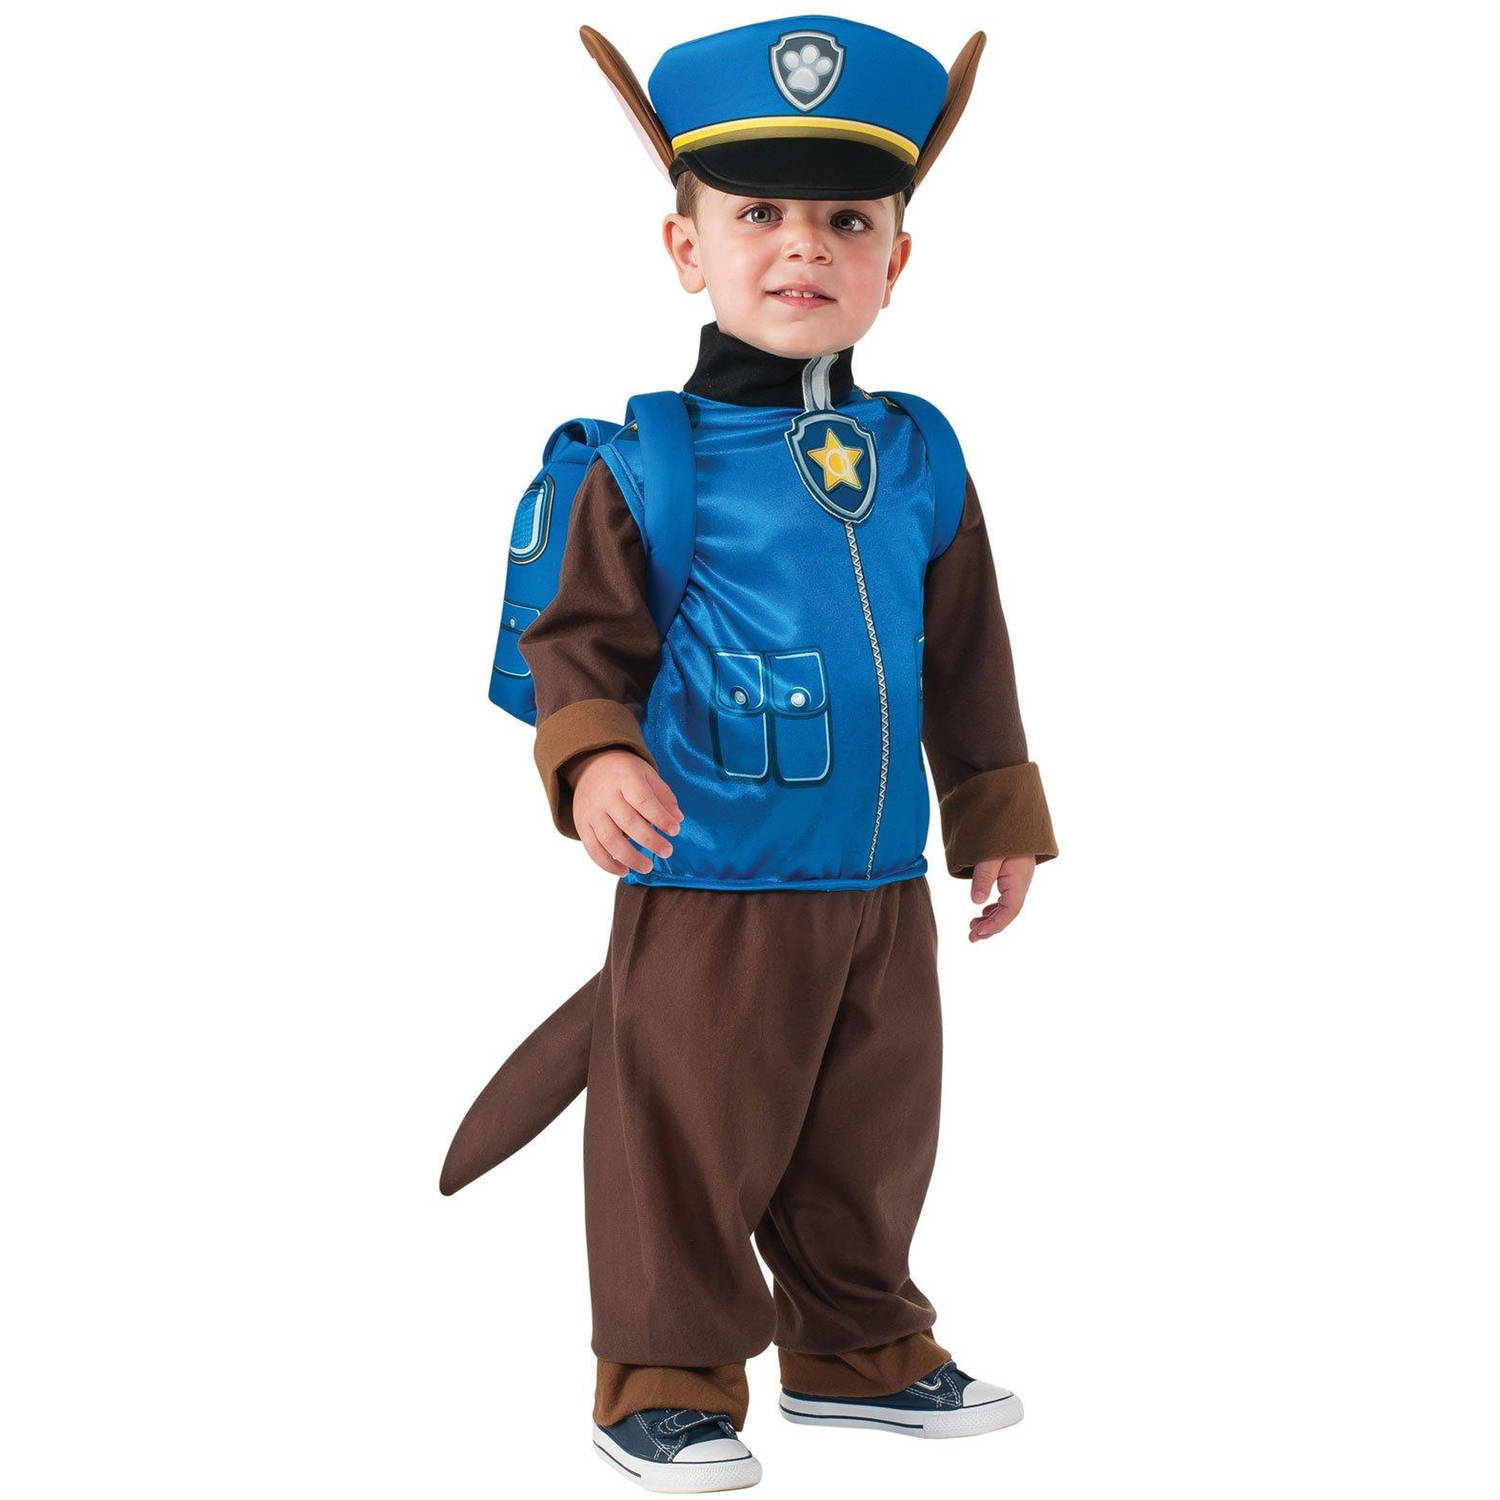 Paw Patrol Chase Child Halloween Costume, Size Small (4-6)